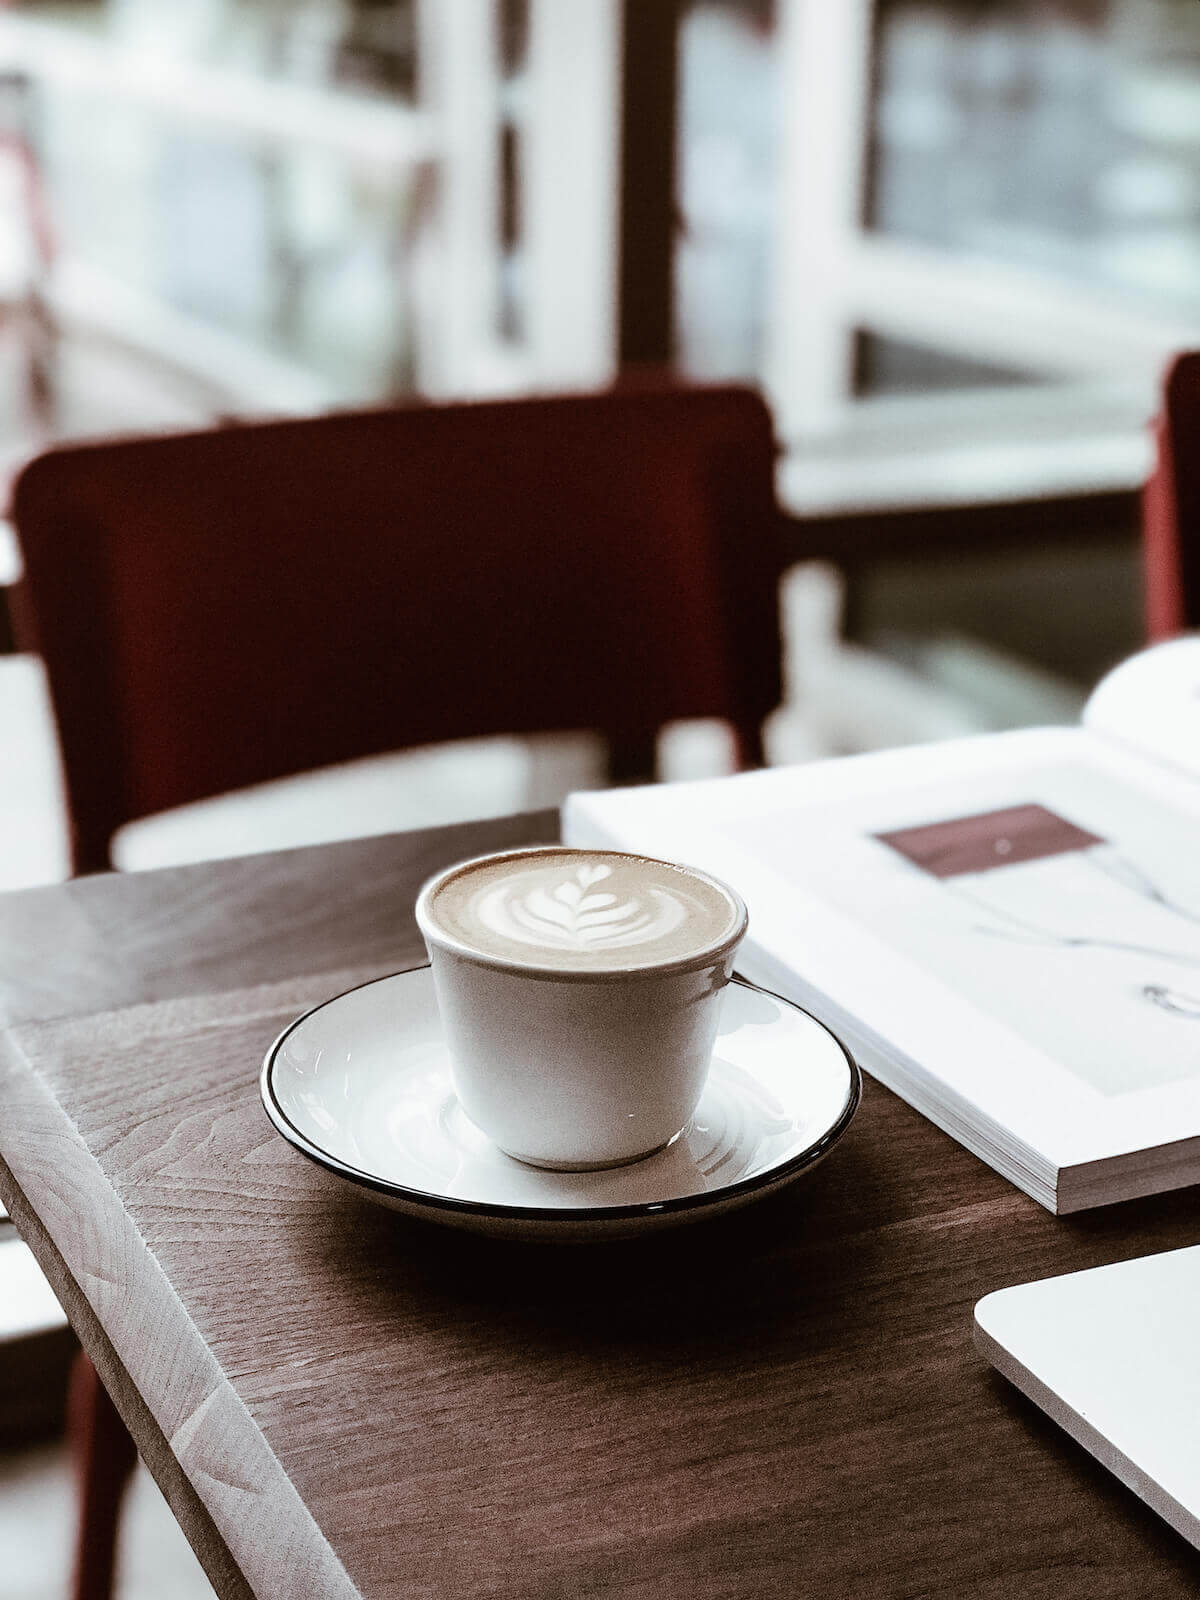 vanilla latte and book on table with chair